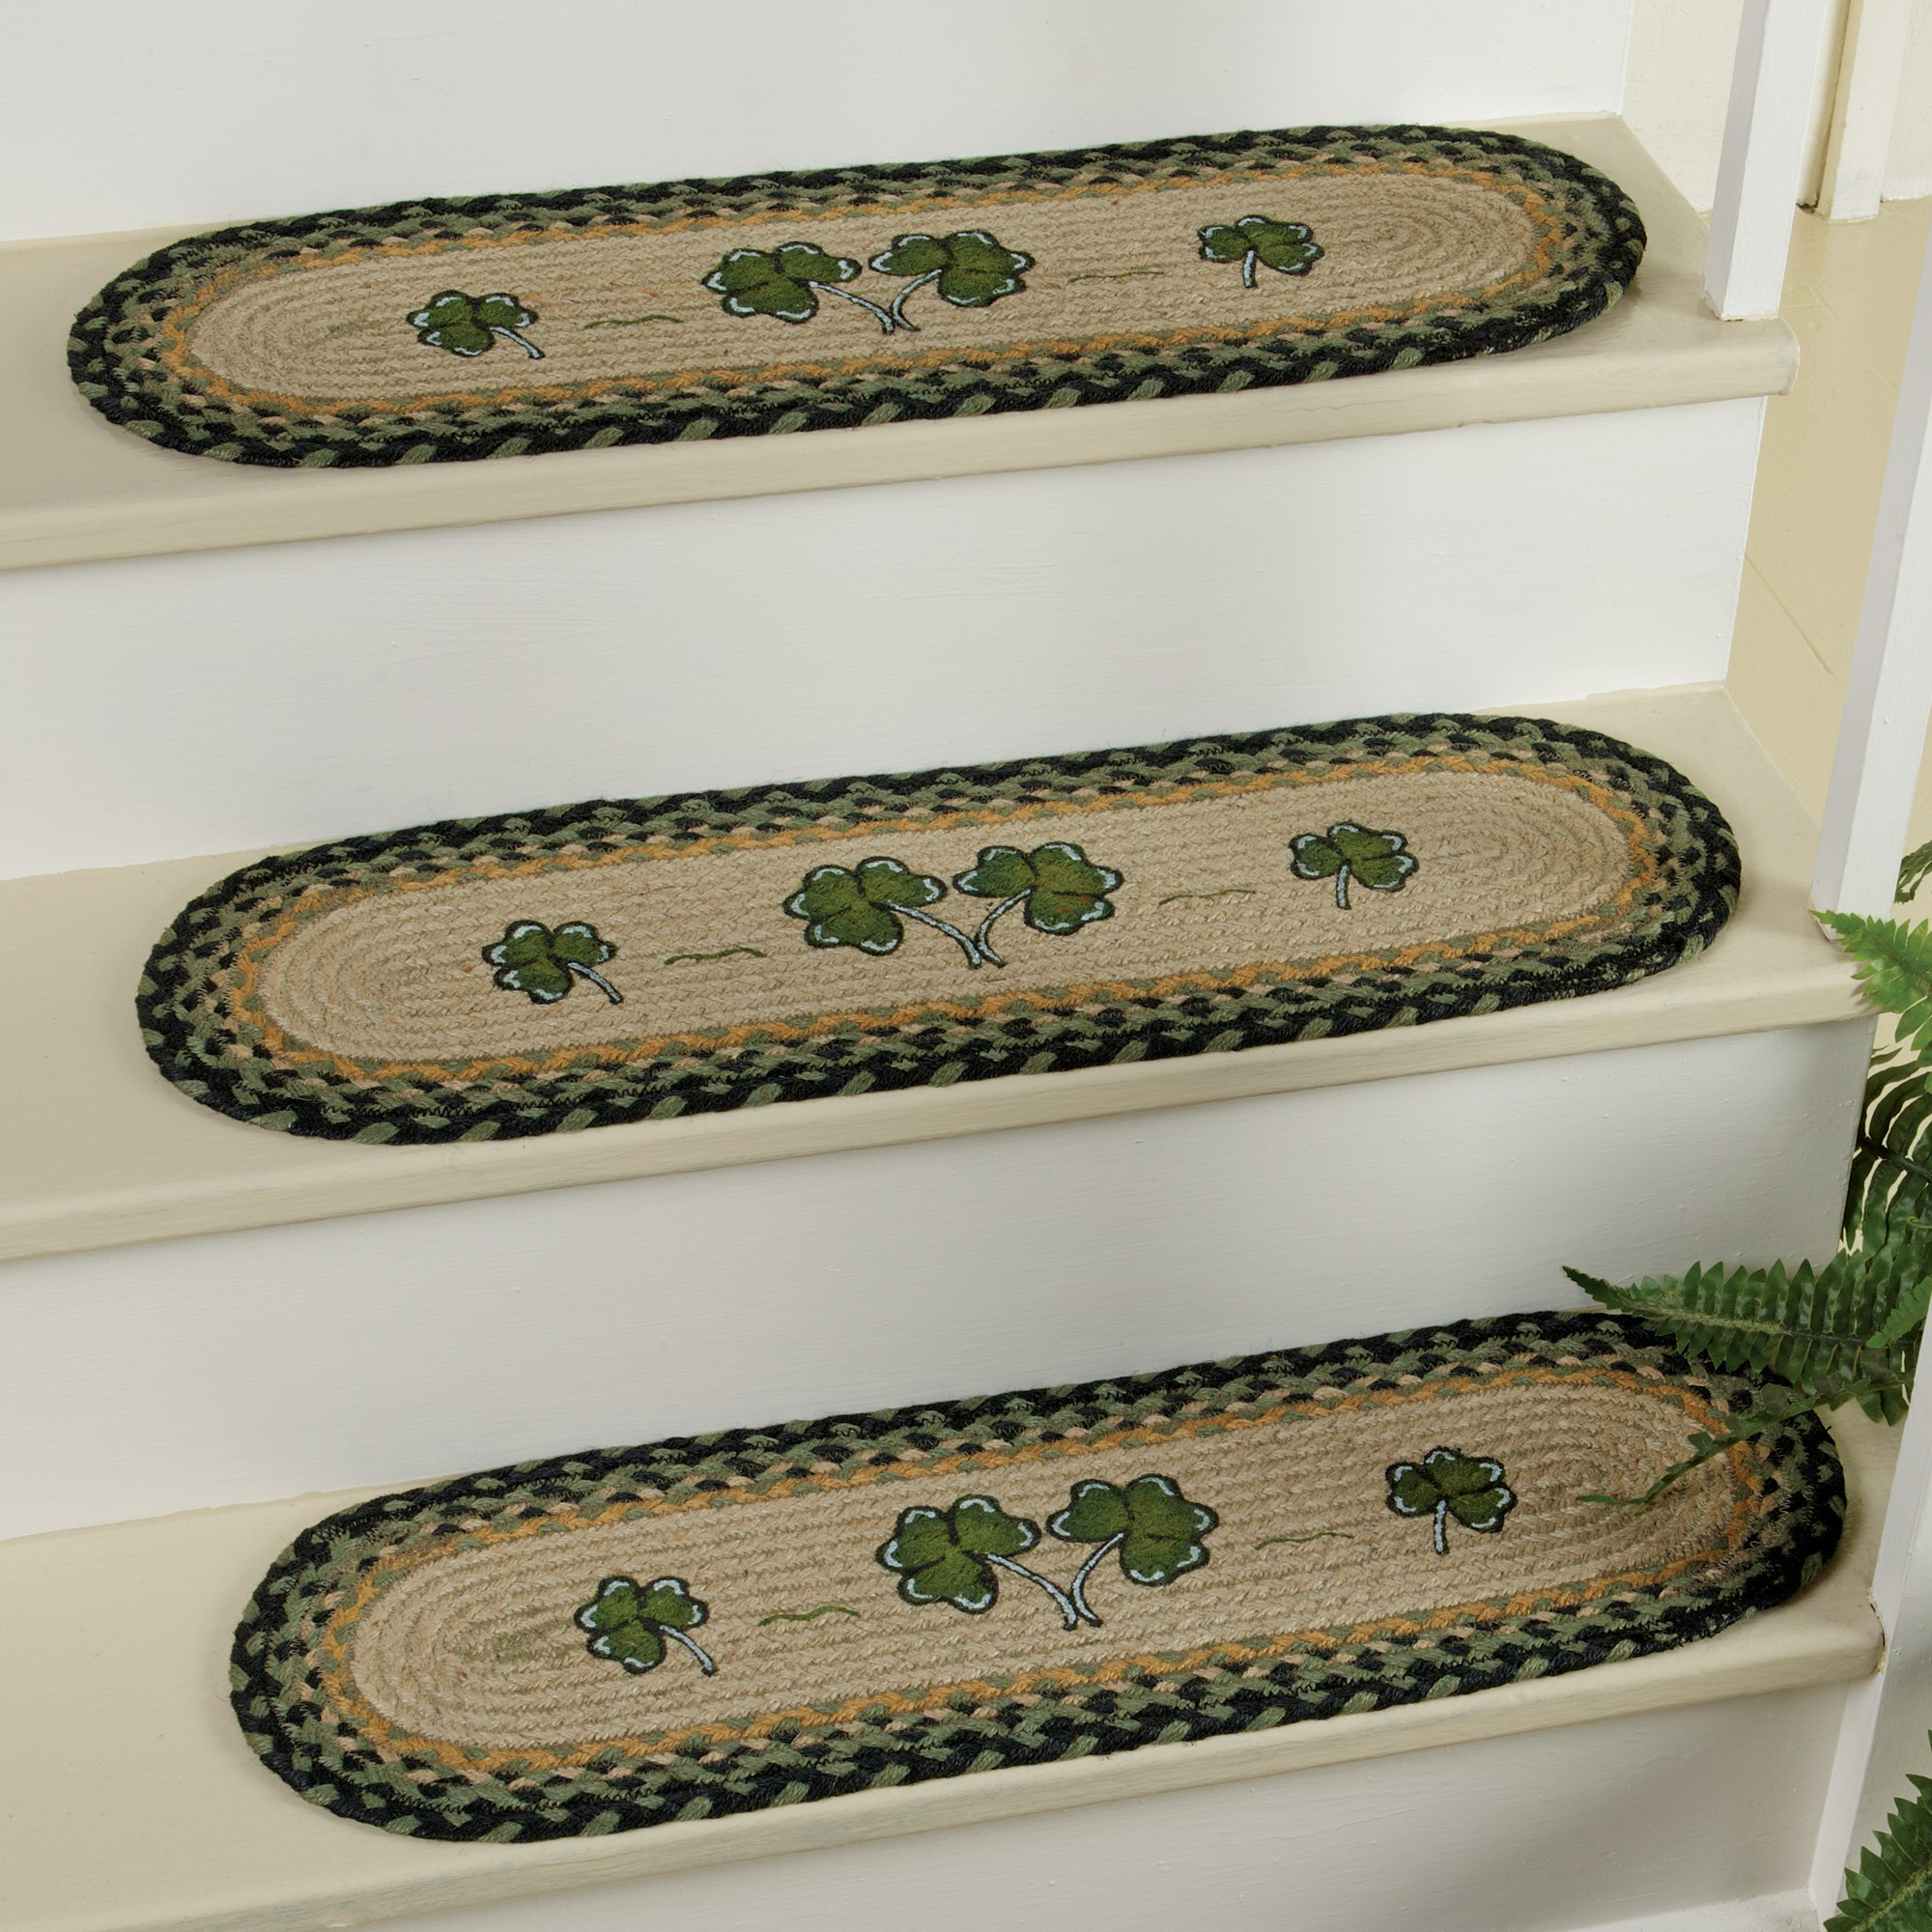 Sheep & Shamrock Braided Jute Stair Tread